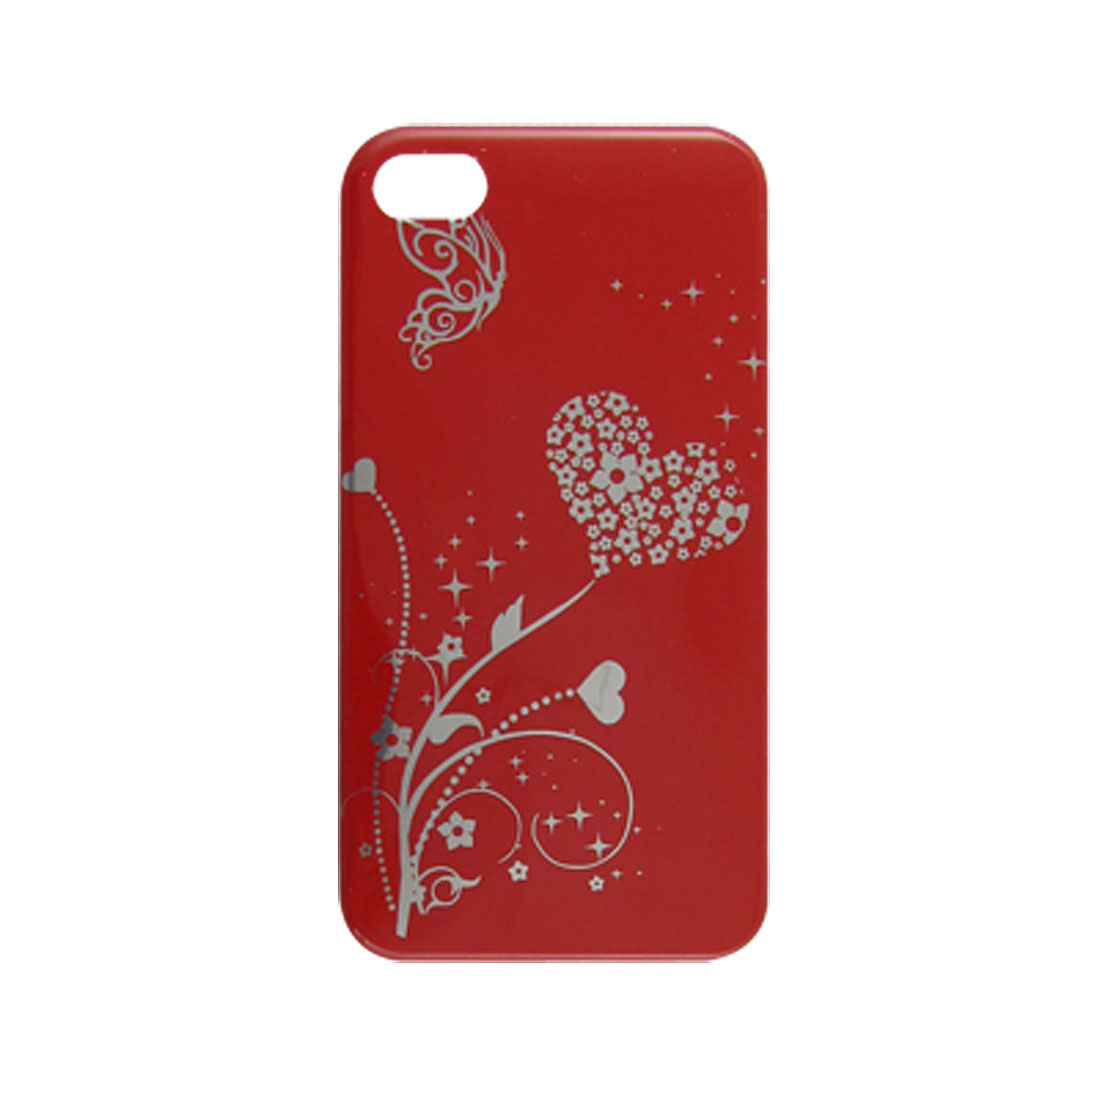 Red Silver Tone IMD Floral Print Hard Plastic Cover for iPhone 4 4G 4S